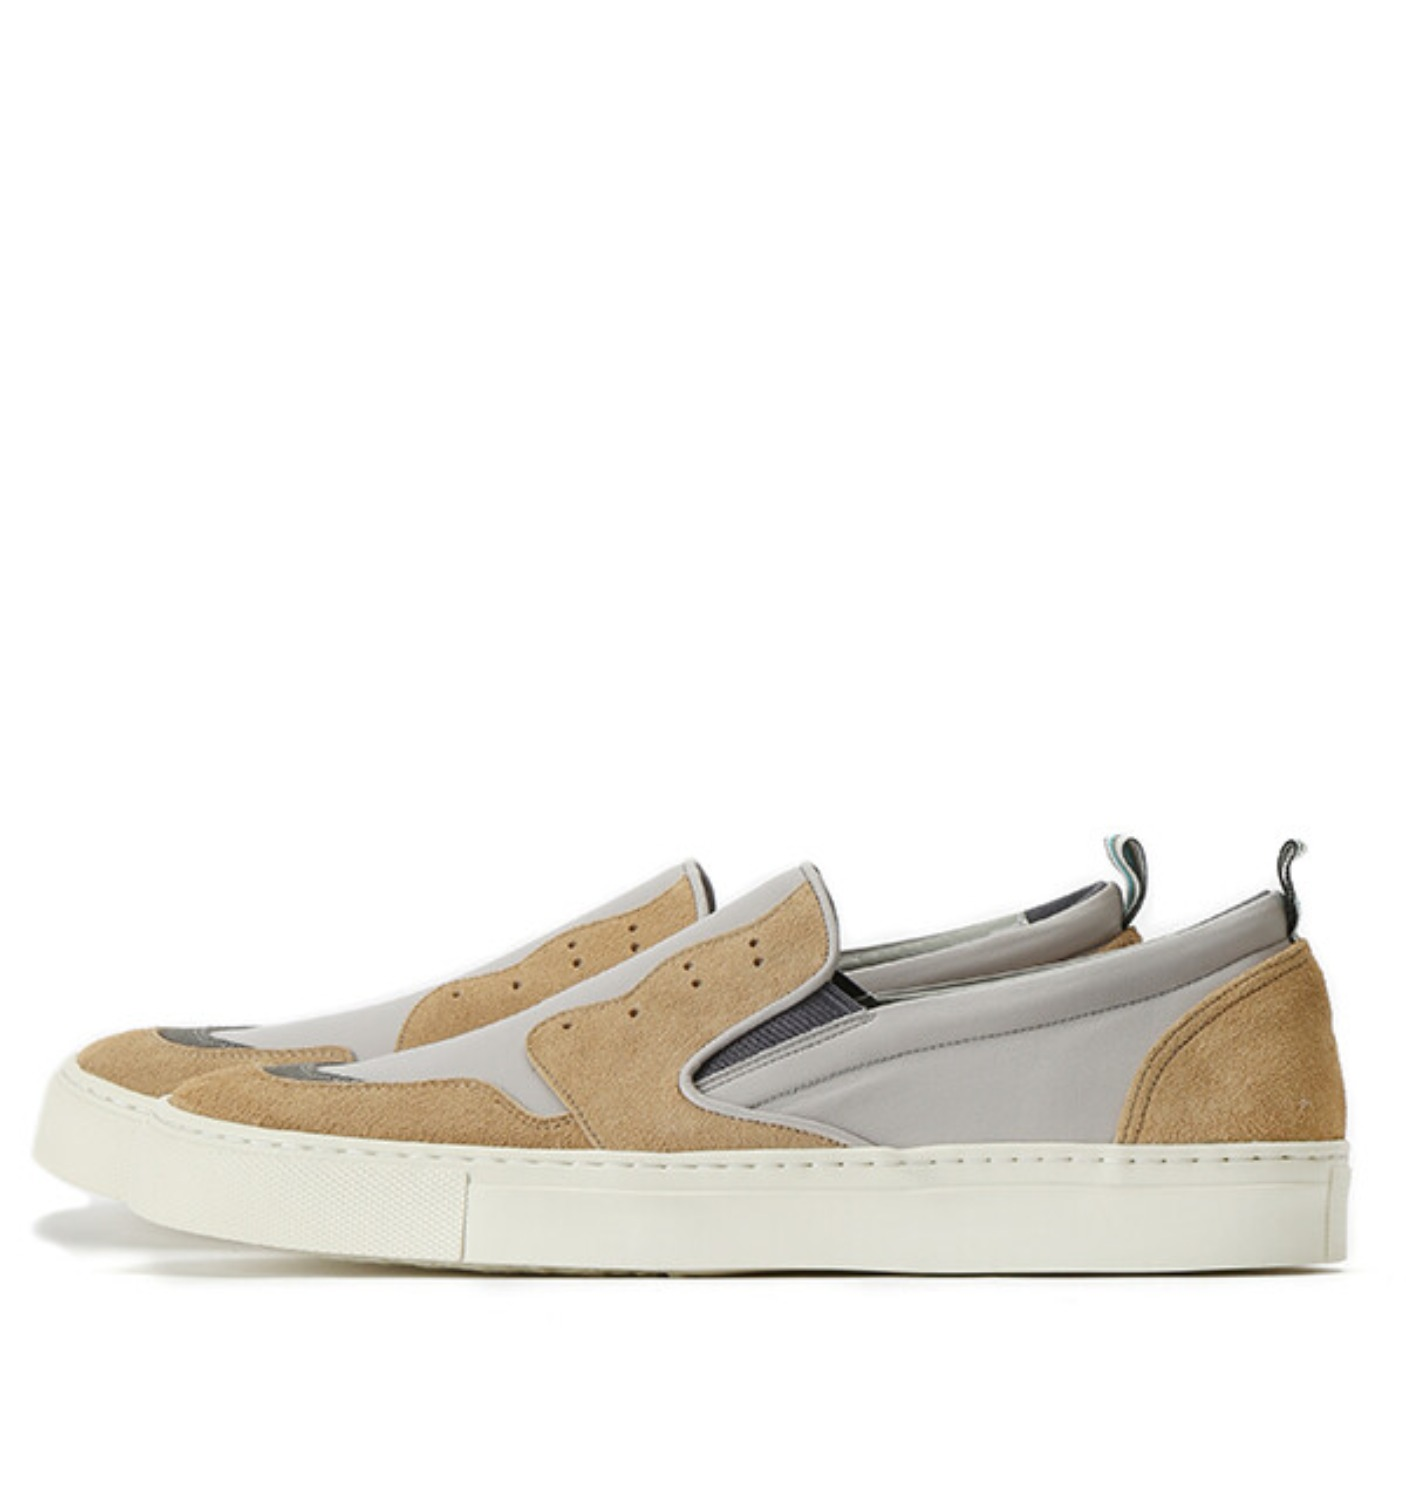 KOLOR SLIP ON BEIGE (18SCMA05504)